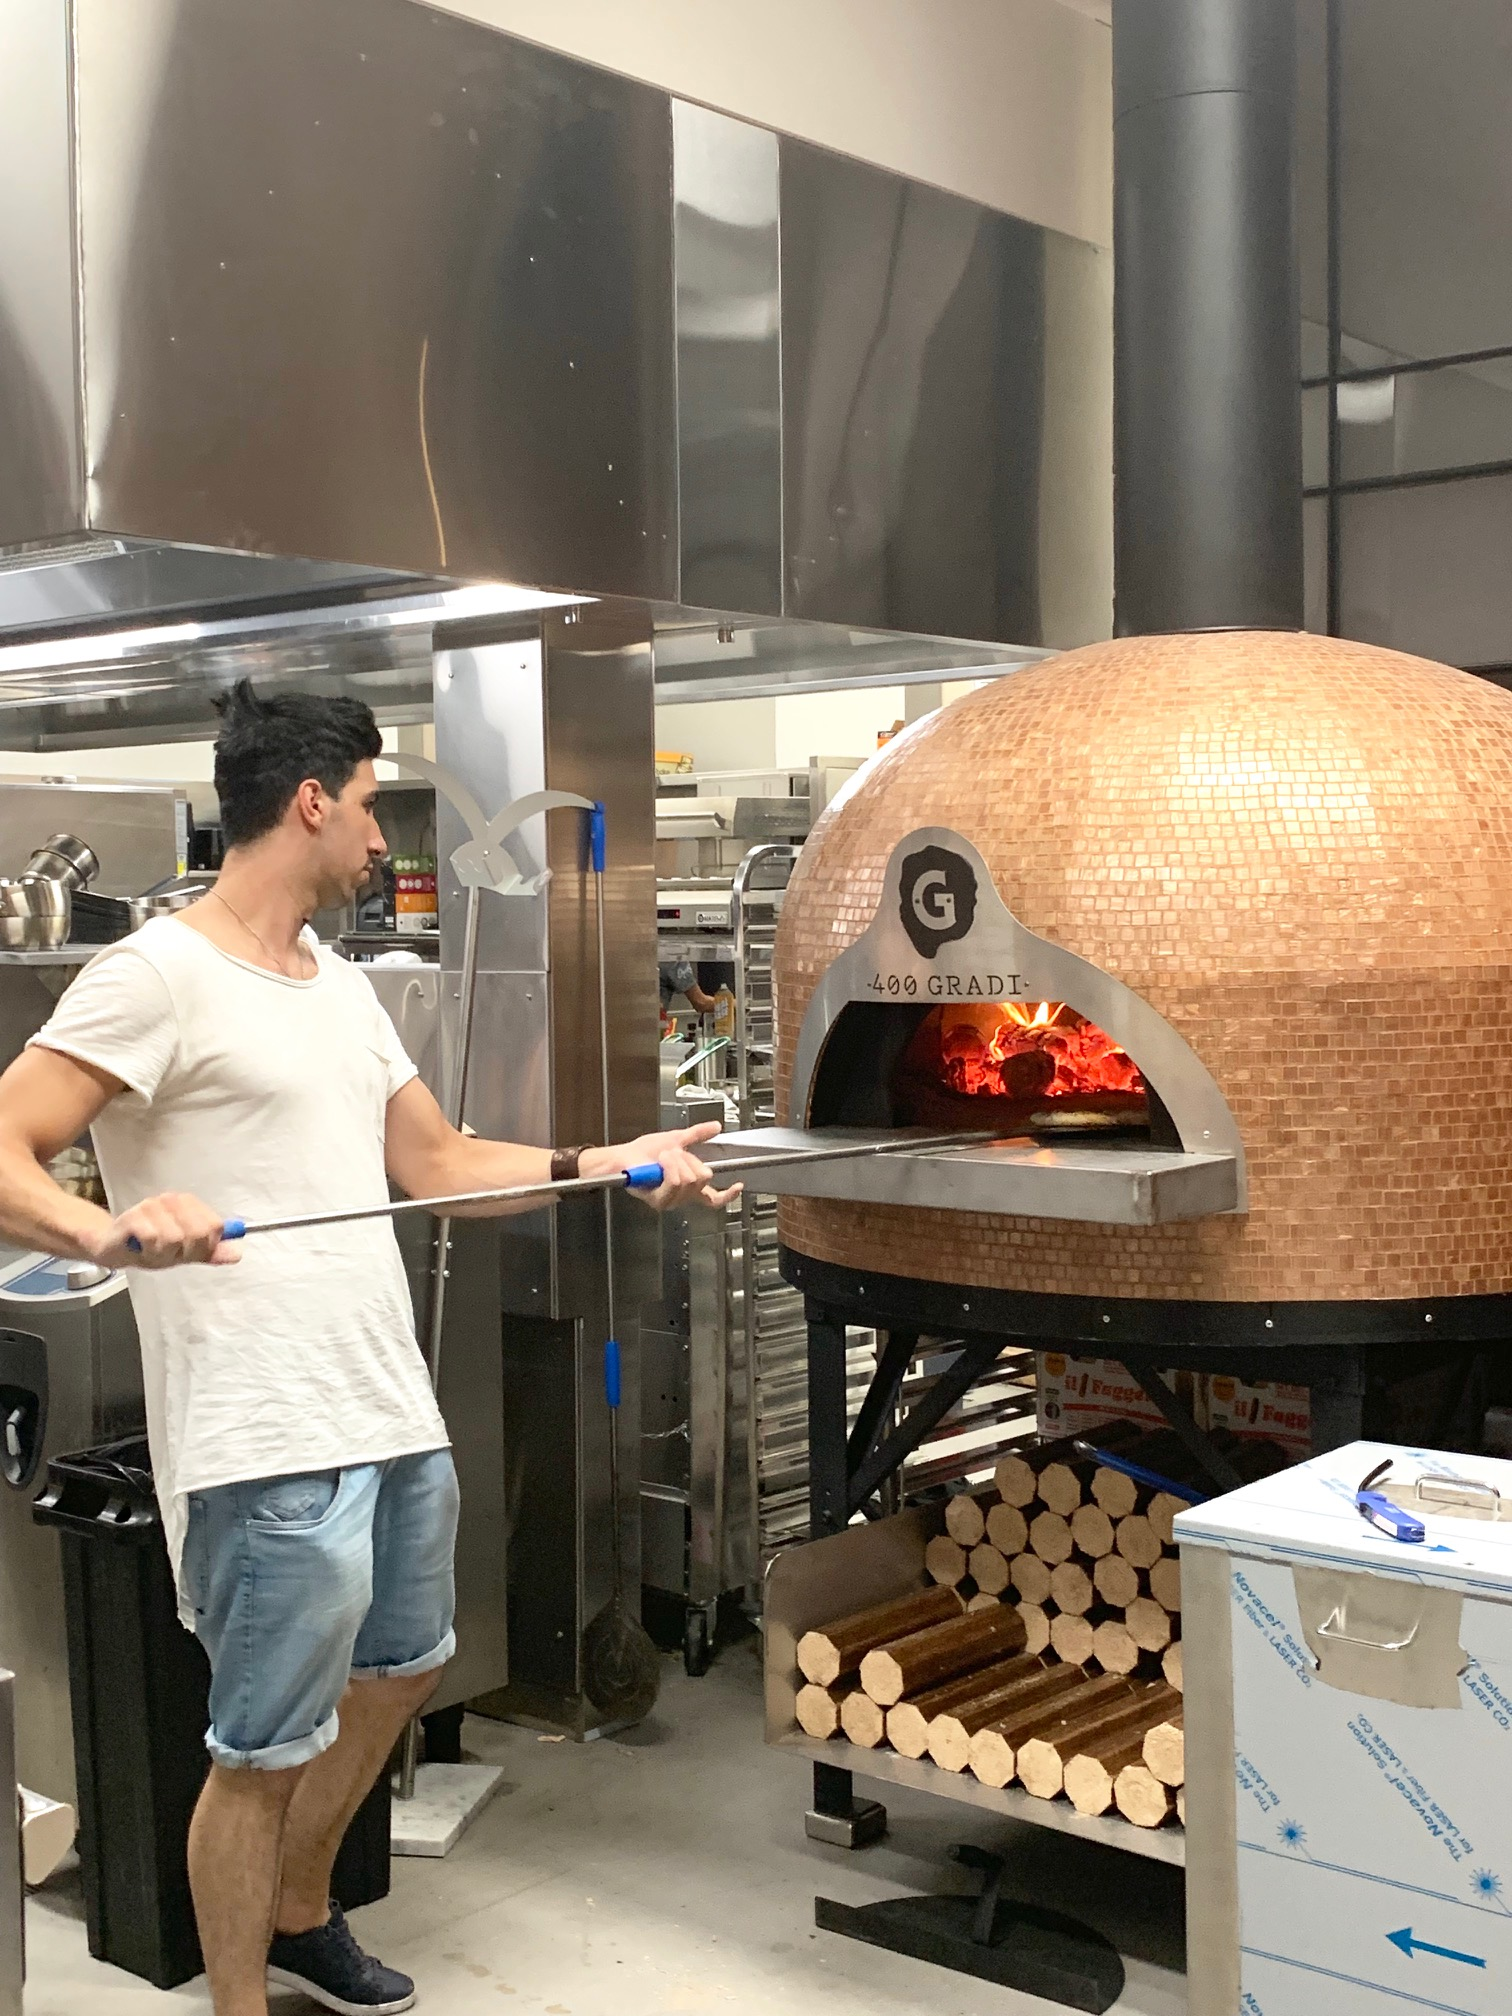 400 Gradi's wood fired pizza oven